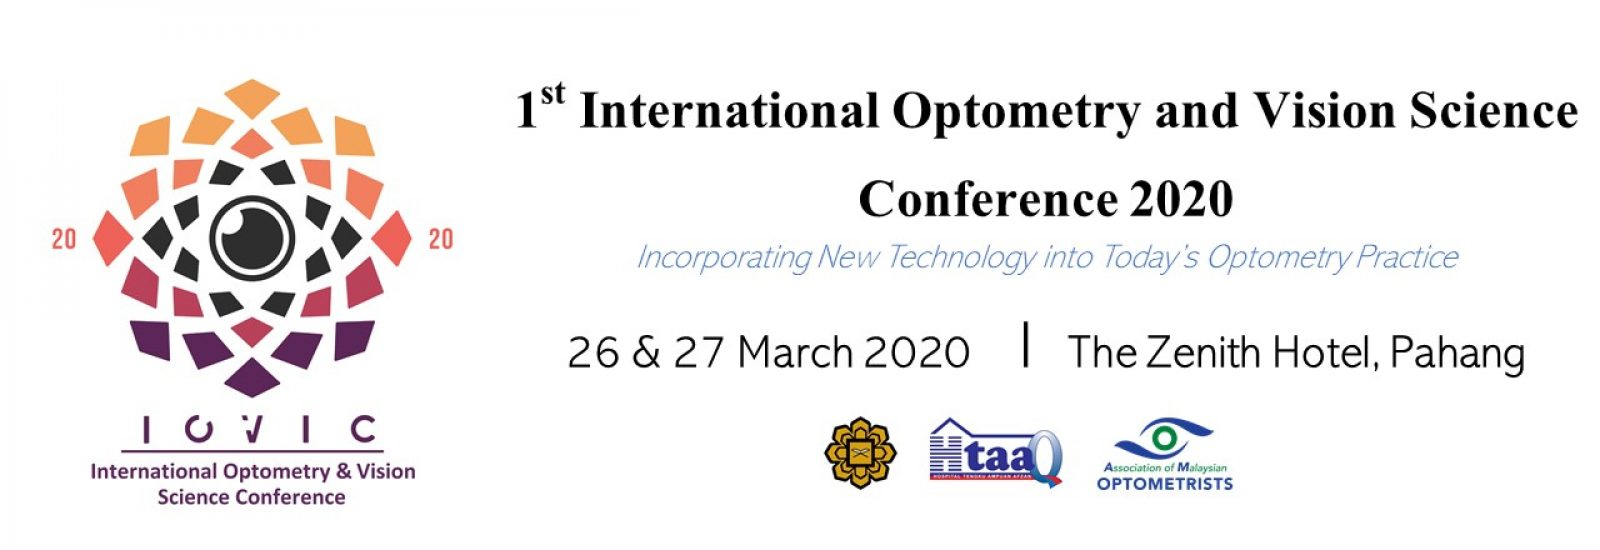 International Optometry and Vision Science Conference 2020